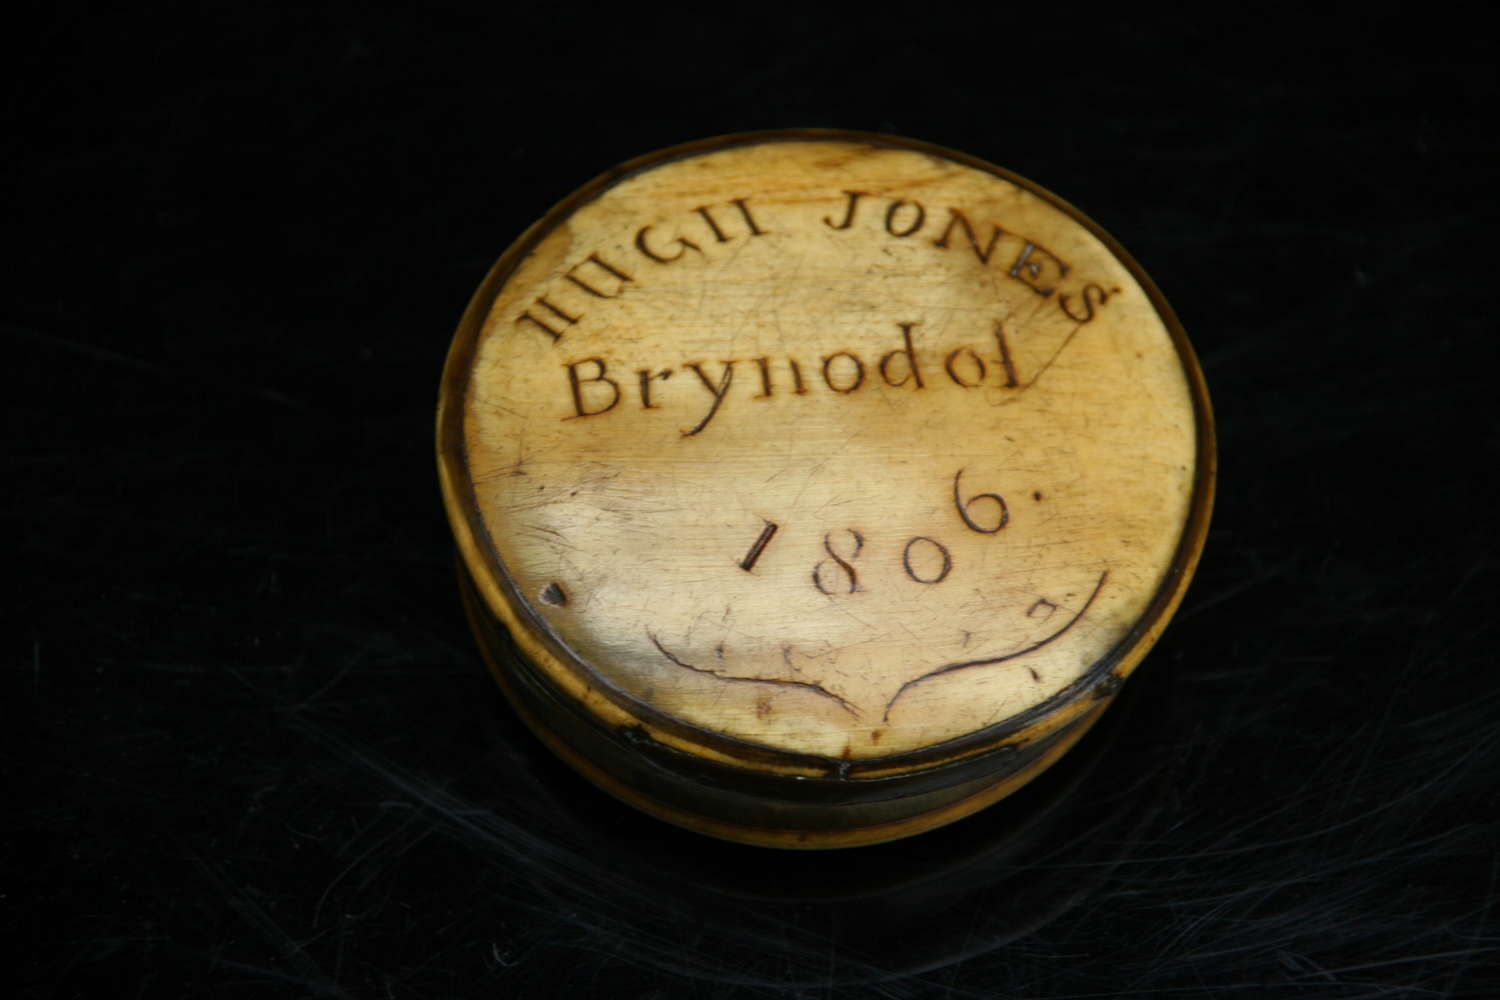 Welsh 19th century Snuff Box